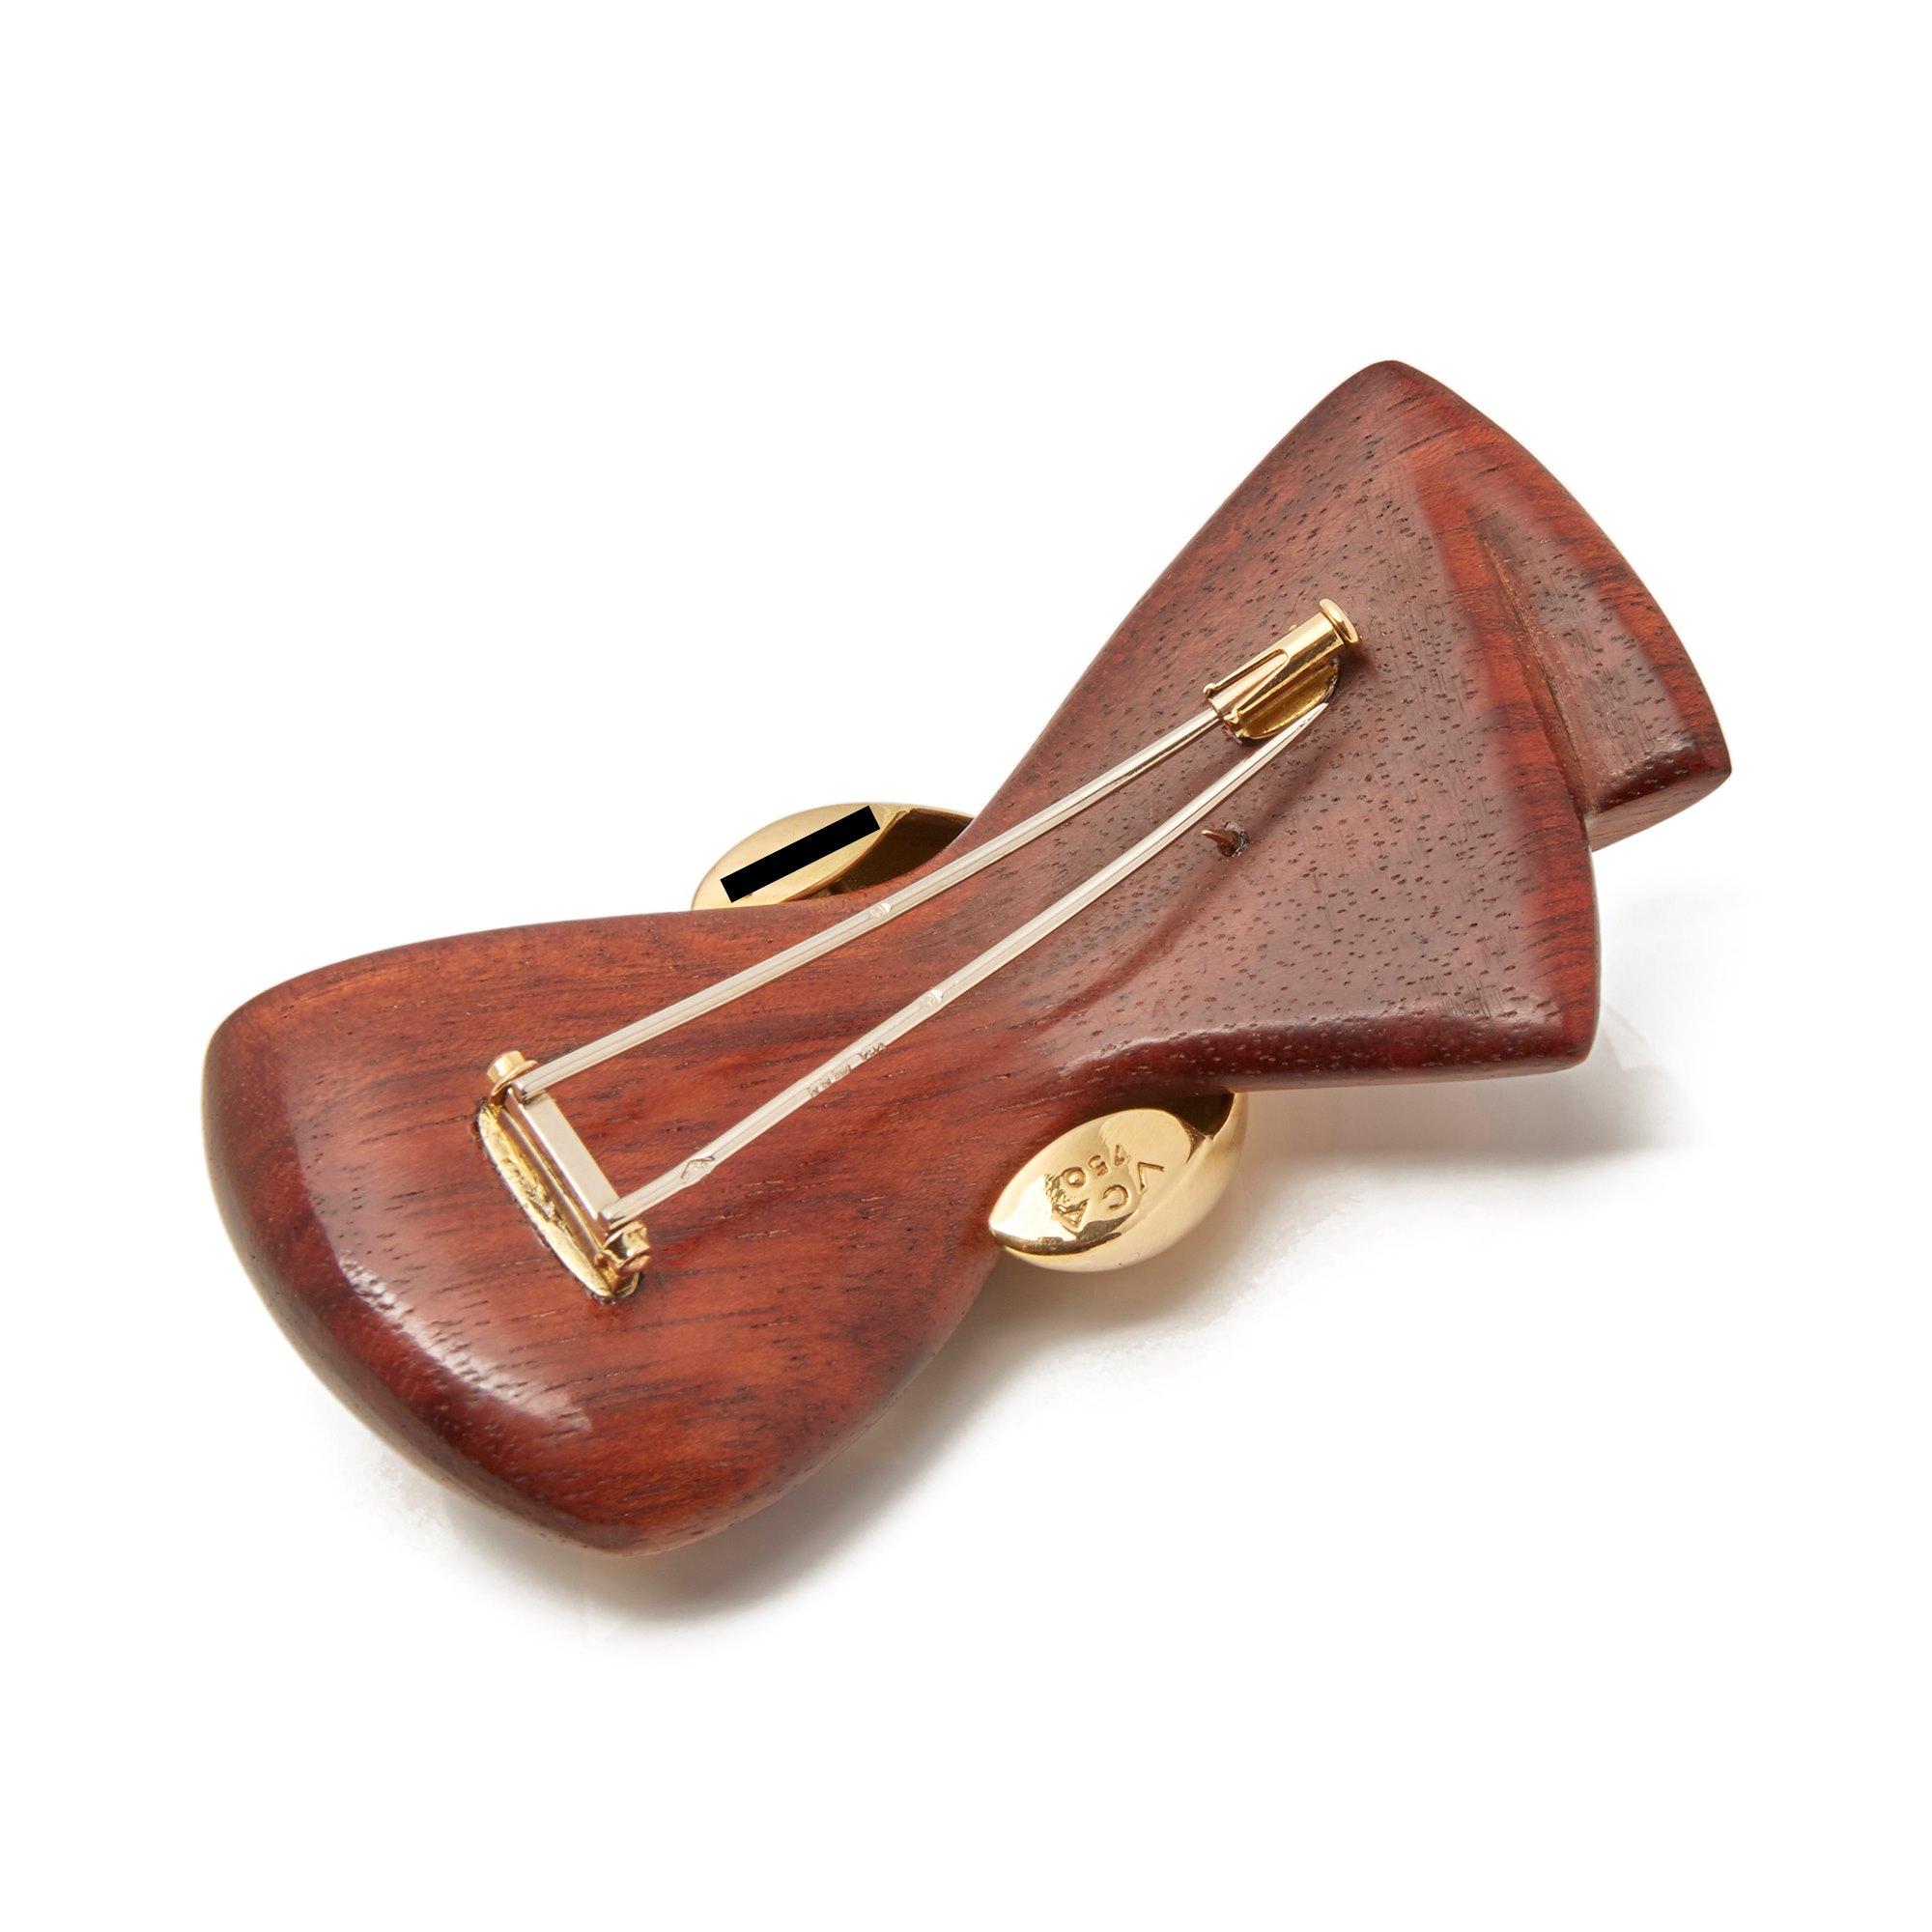 Van Cleef & Arpels 18k Yellow Gold & Wooden Vintage Bow Brooch